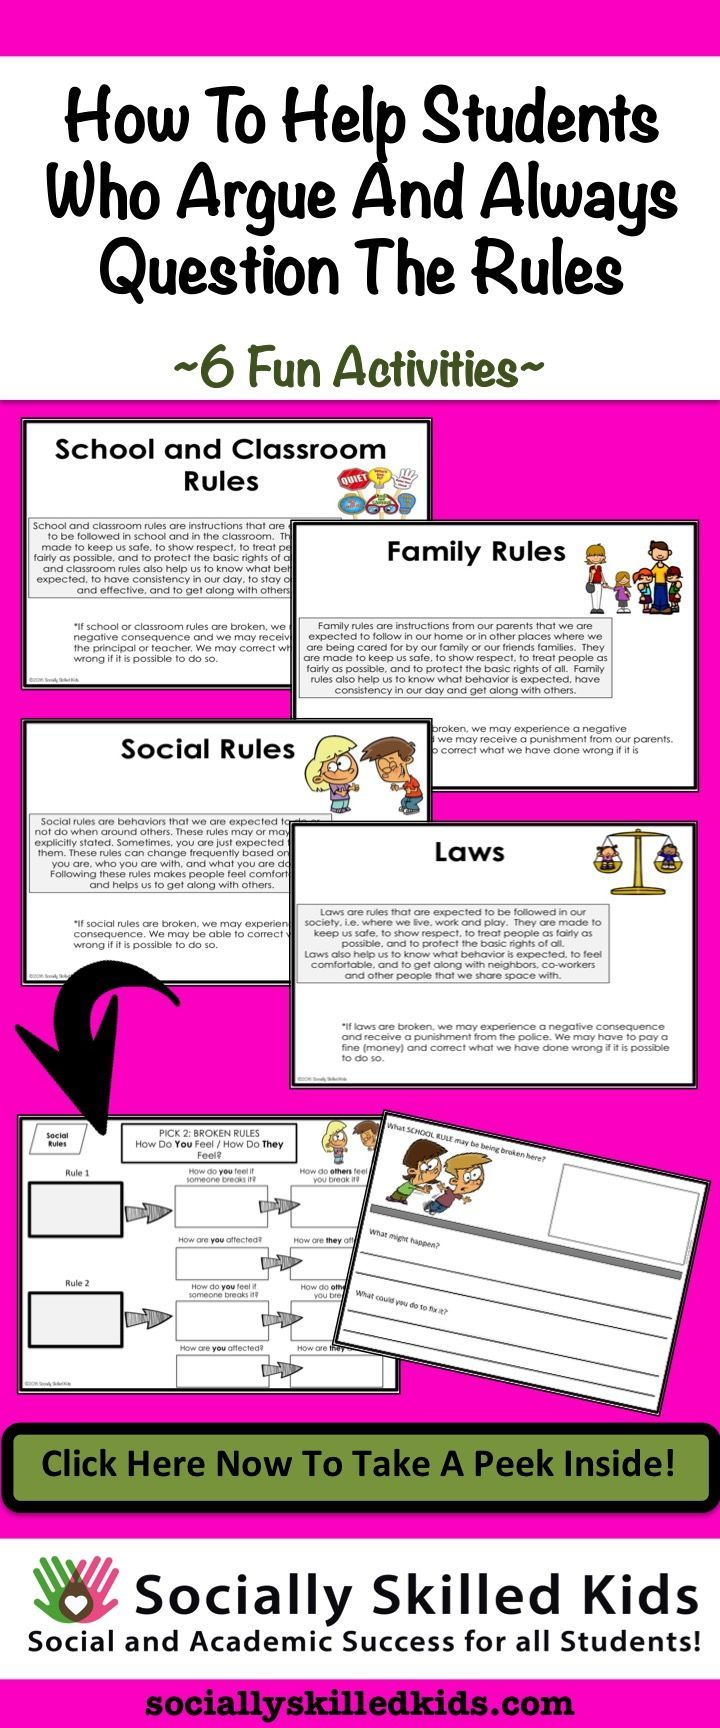 Home rules pictures and laws.